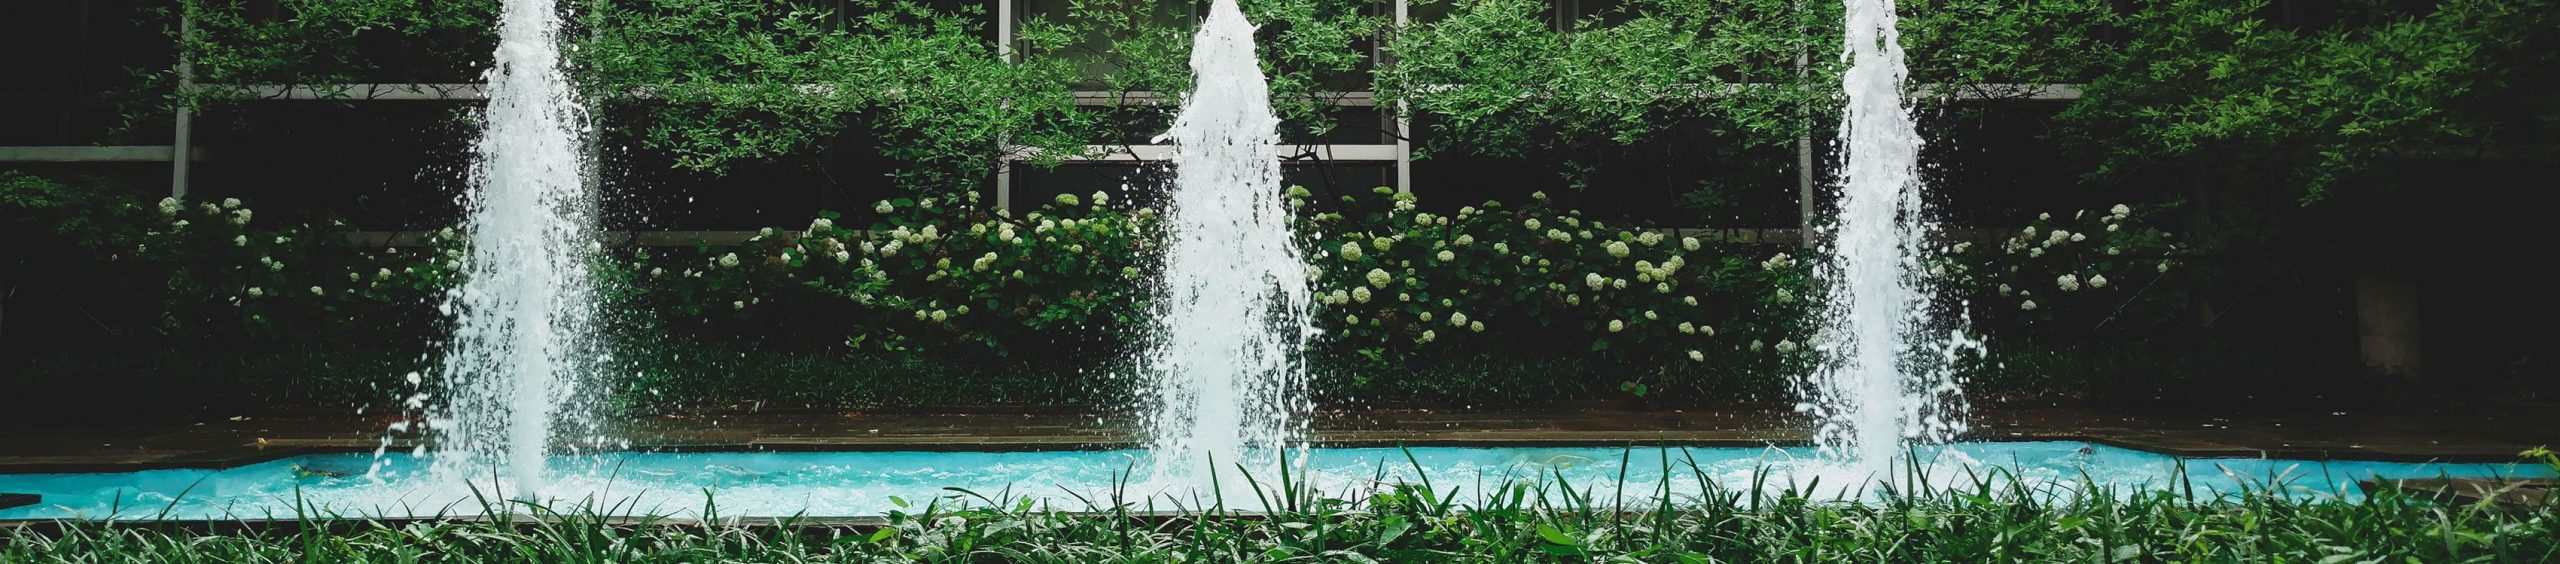 landscaper-water-feature-hero-background